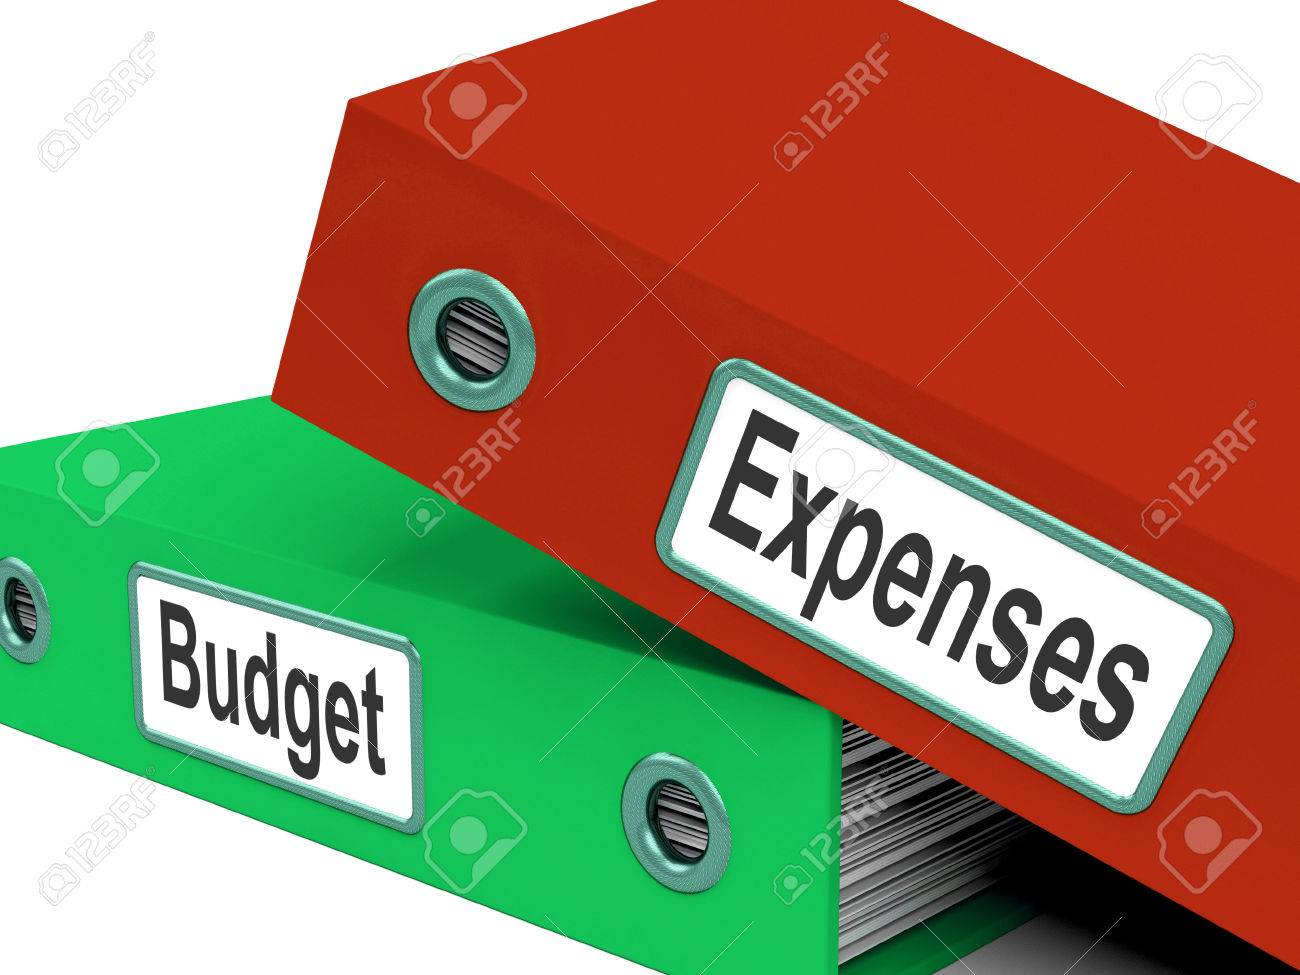 budget expenses folders meaning business finances and budgeting